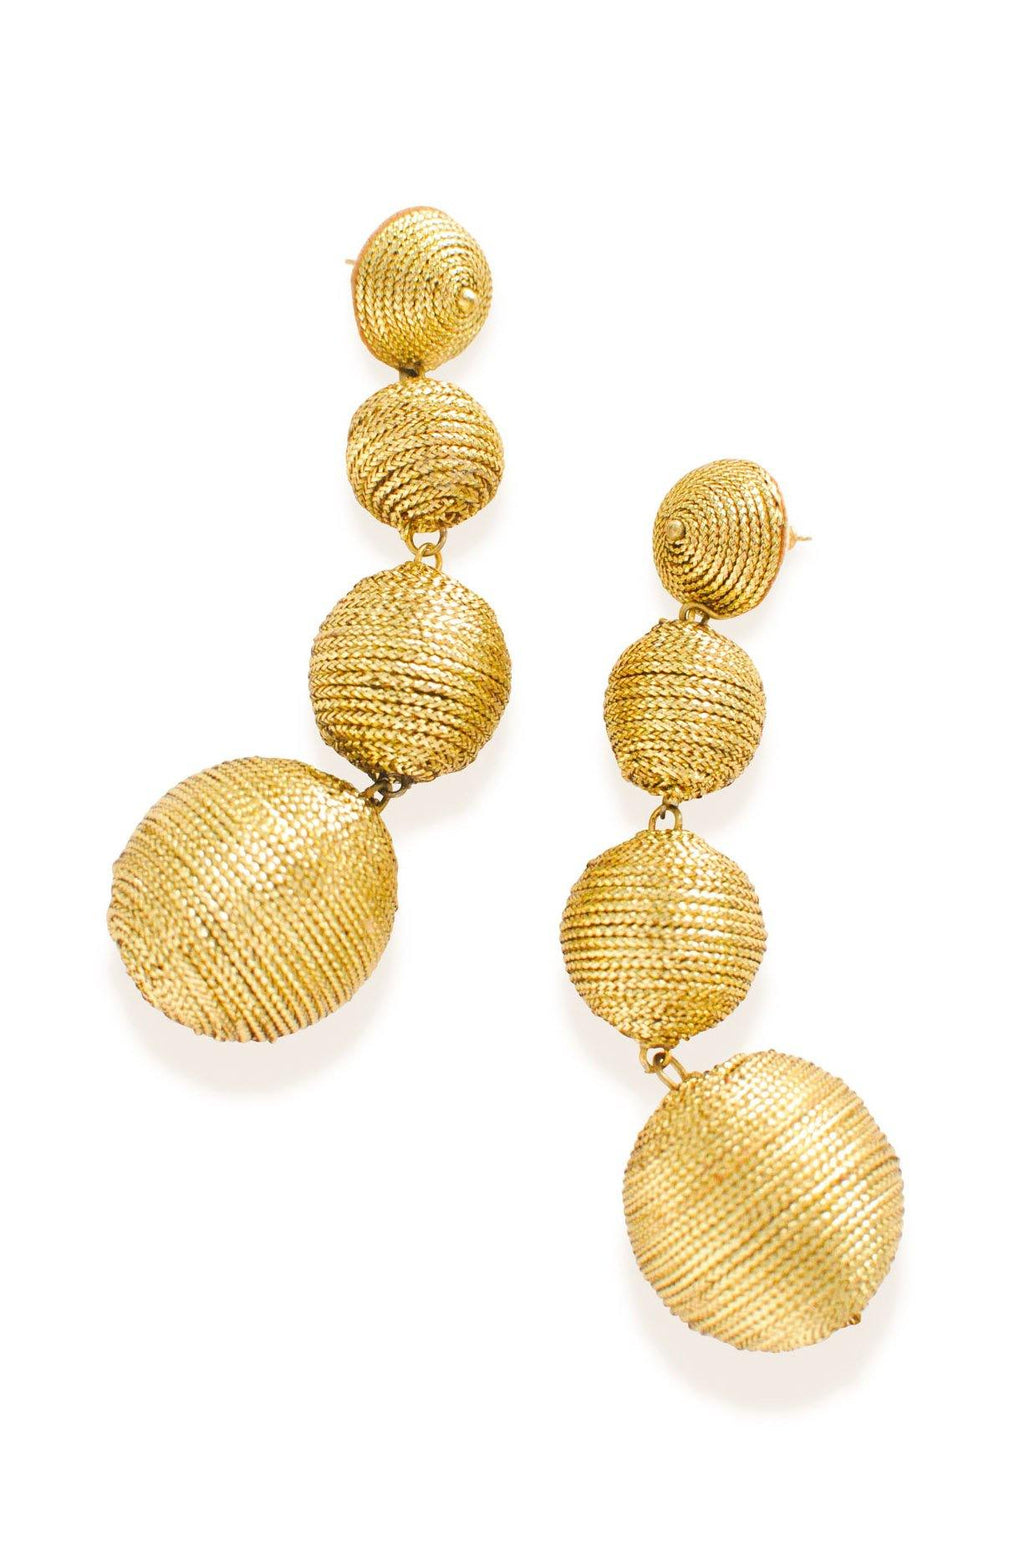 Kenneth Jay Lane Bon Bon Pierced Earrings